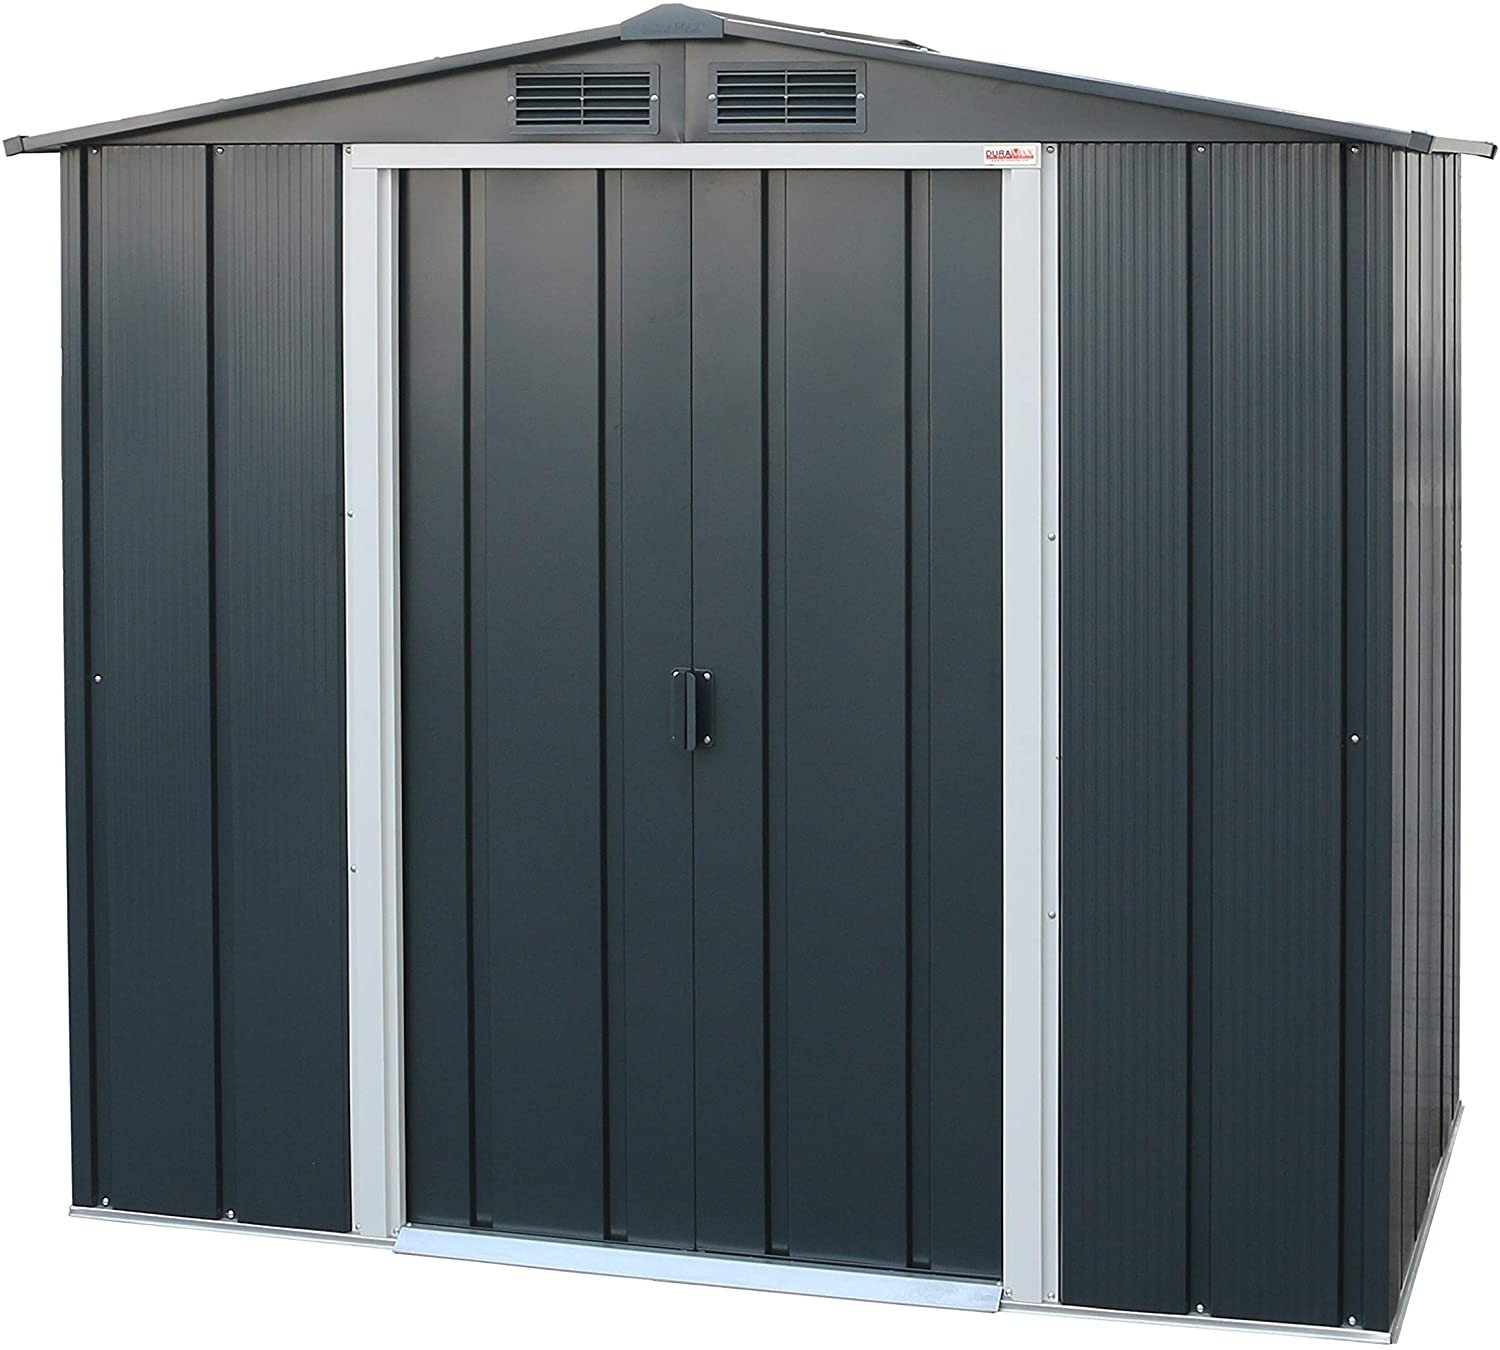 Sapphire 6x4 Metal Shed - Anthracite